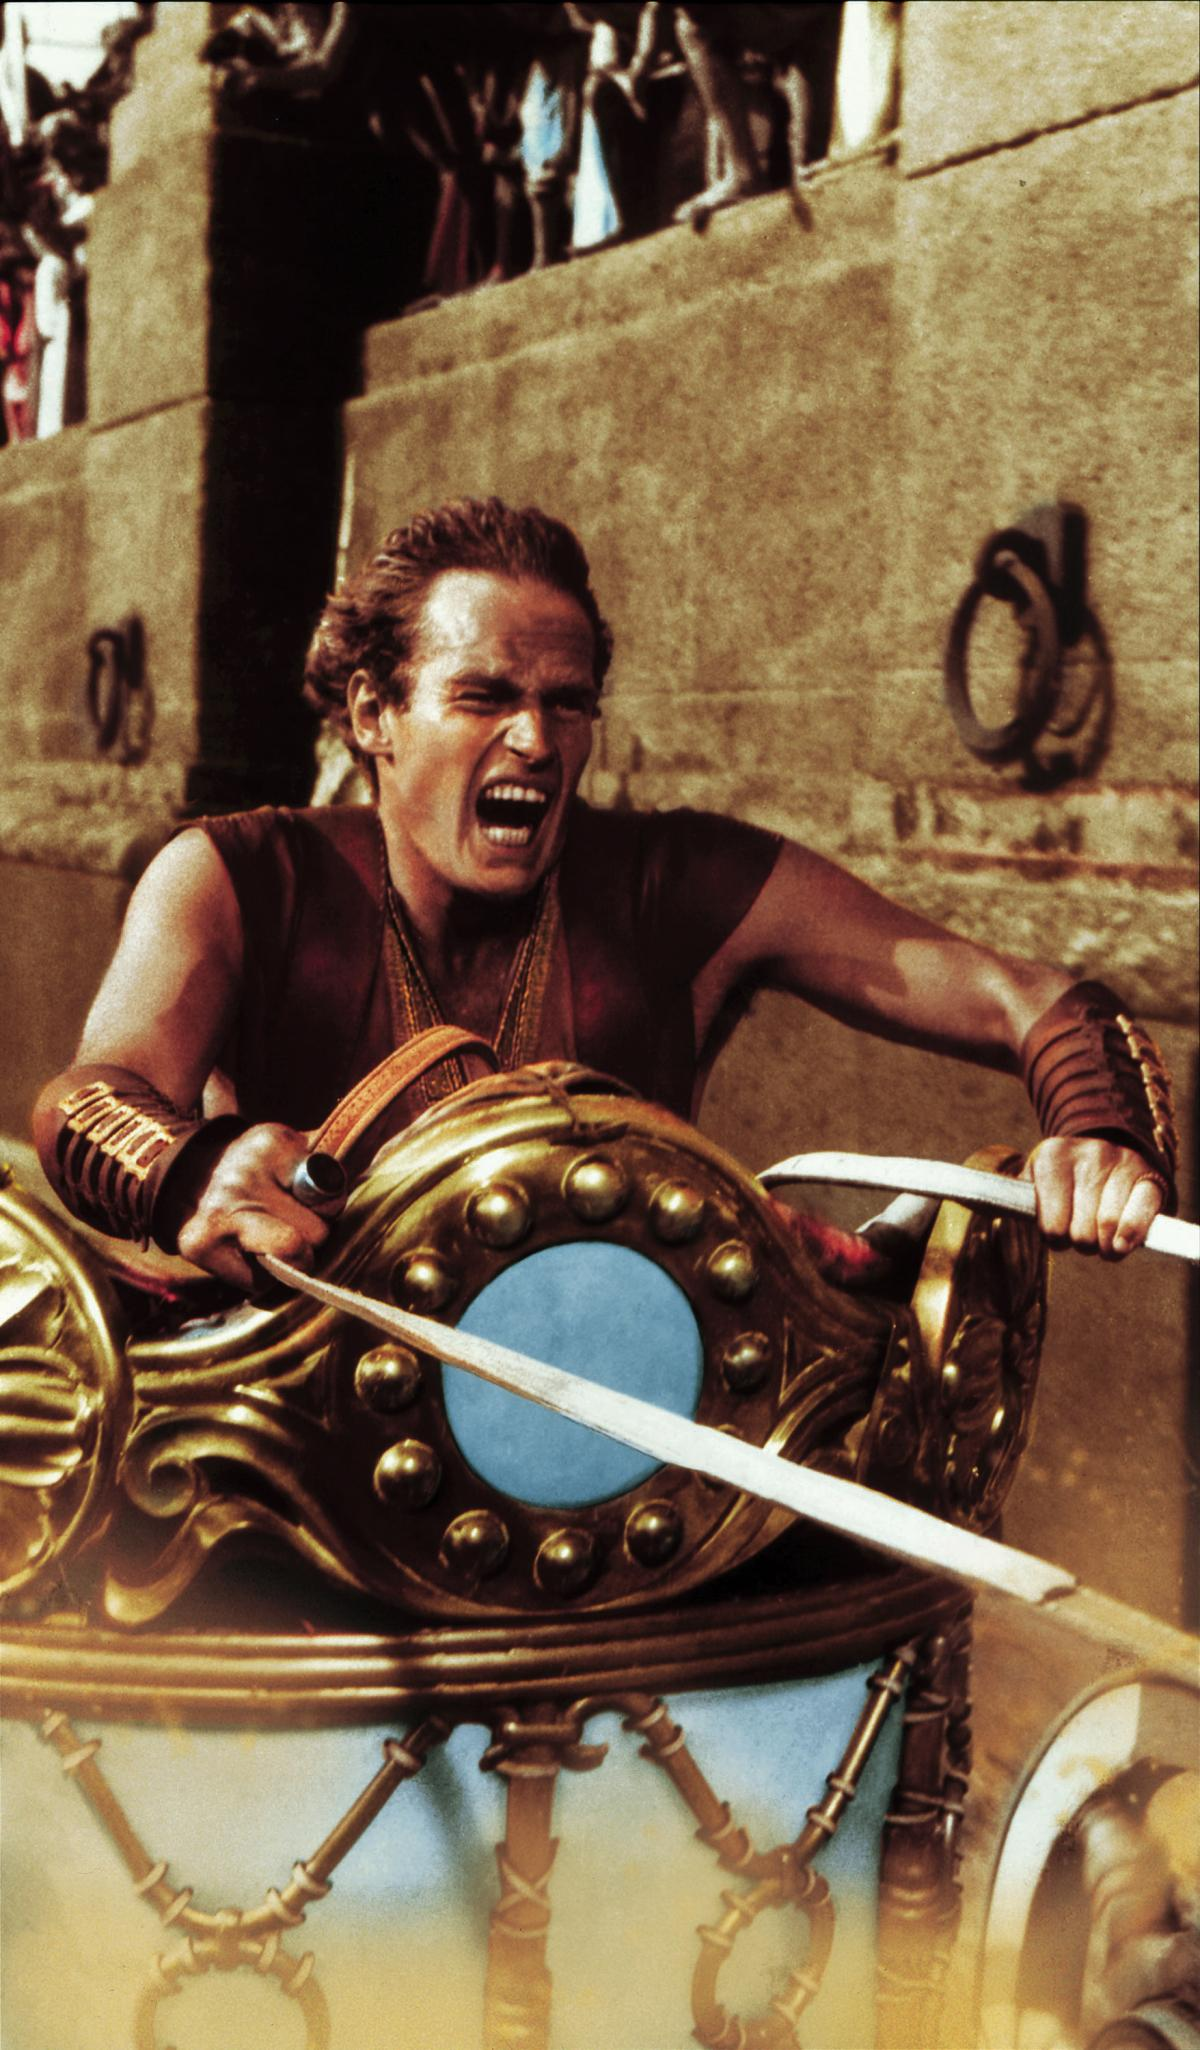 Heston, yelling, pulls on the reins of a chariot during a scene in Ben-Hur the movie